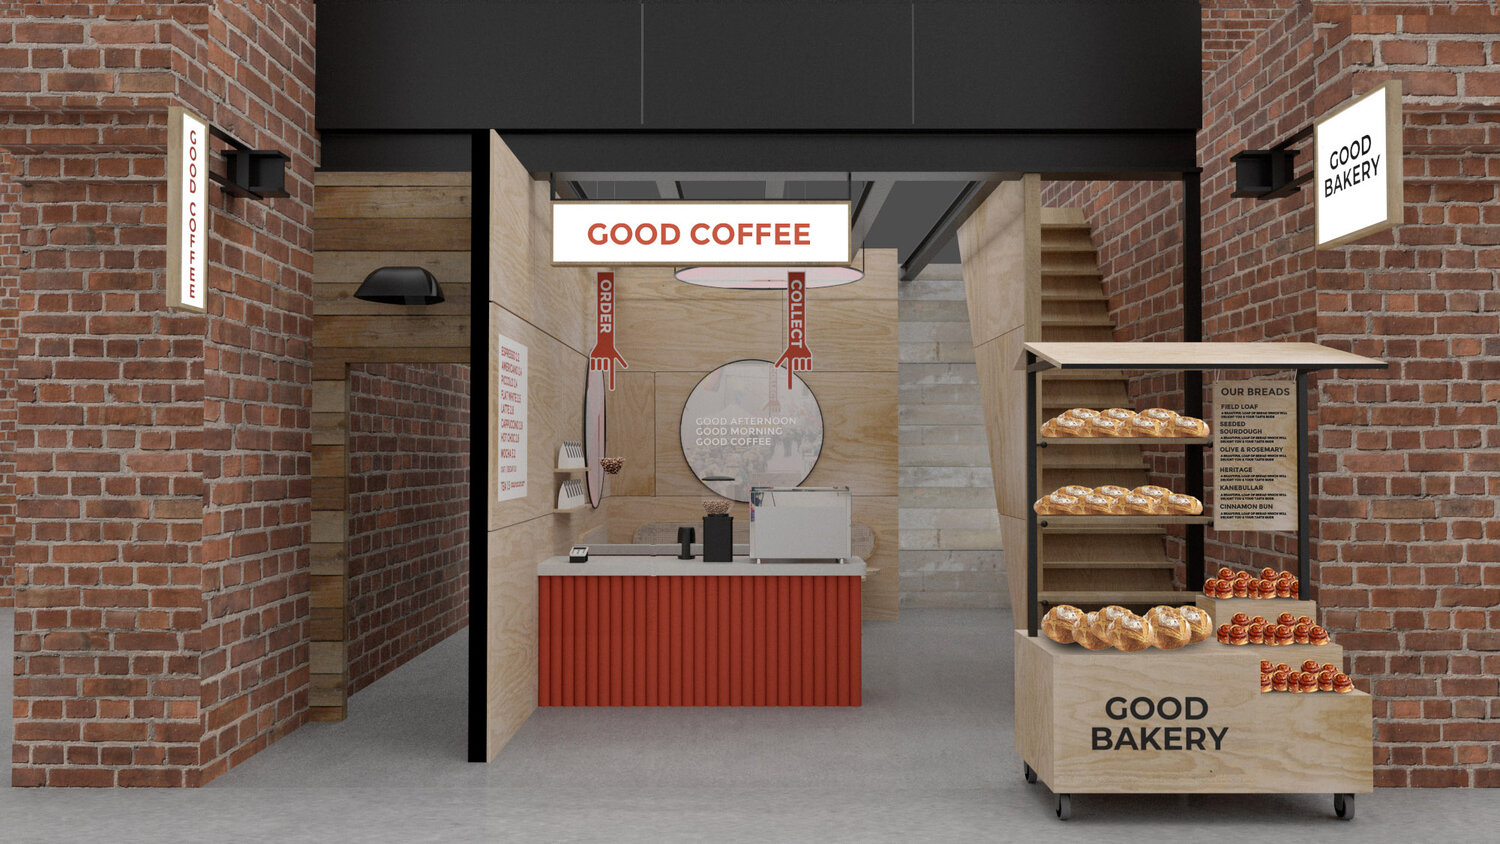 lunarlunar_interior_design_cafe_good_coffee_route 1_maltby_street_front.jpg